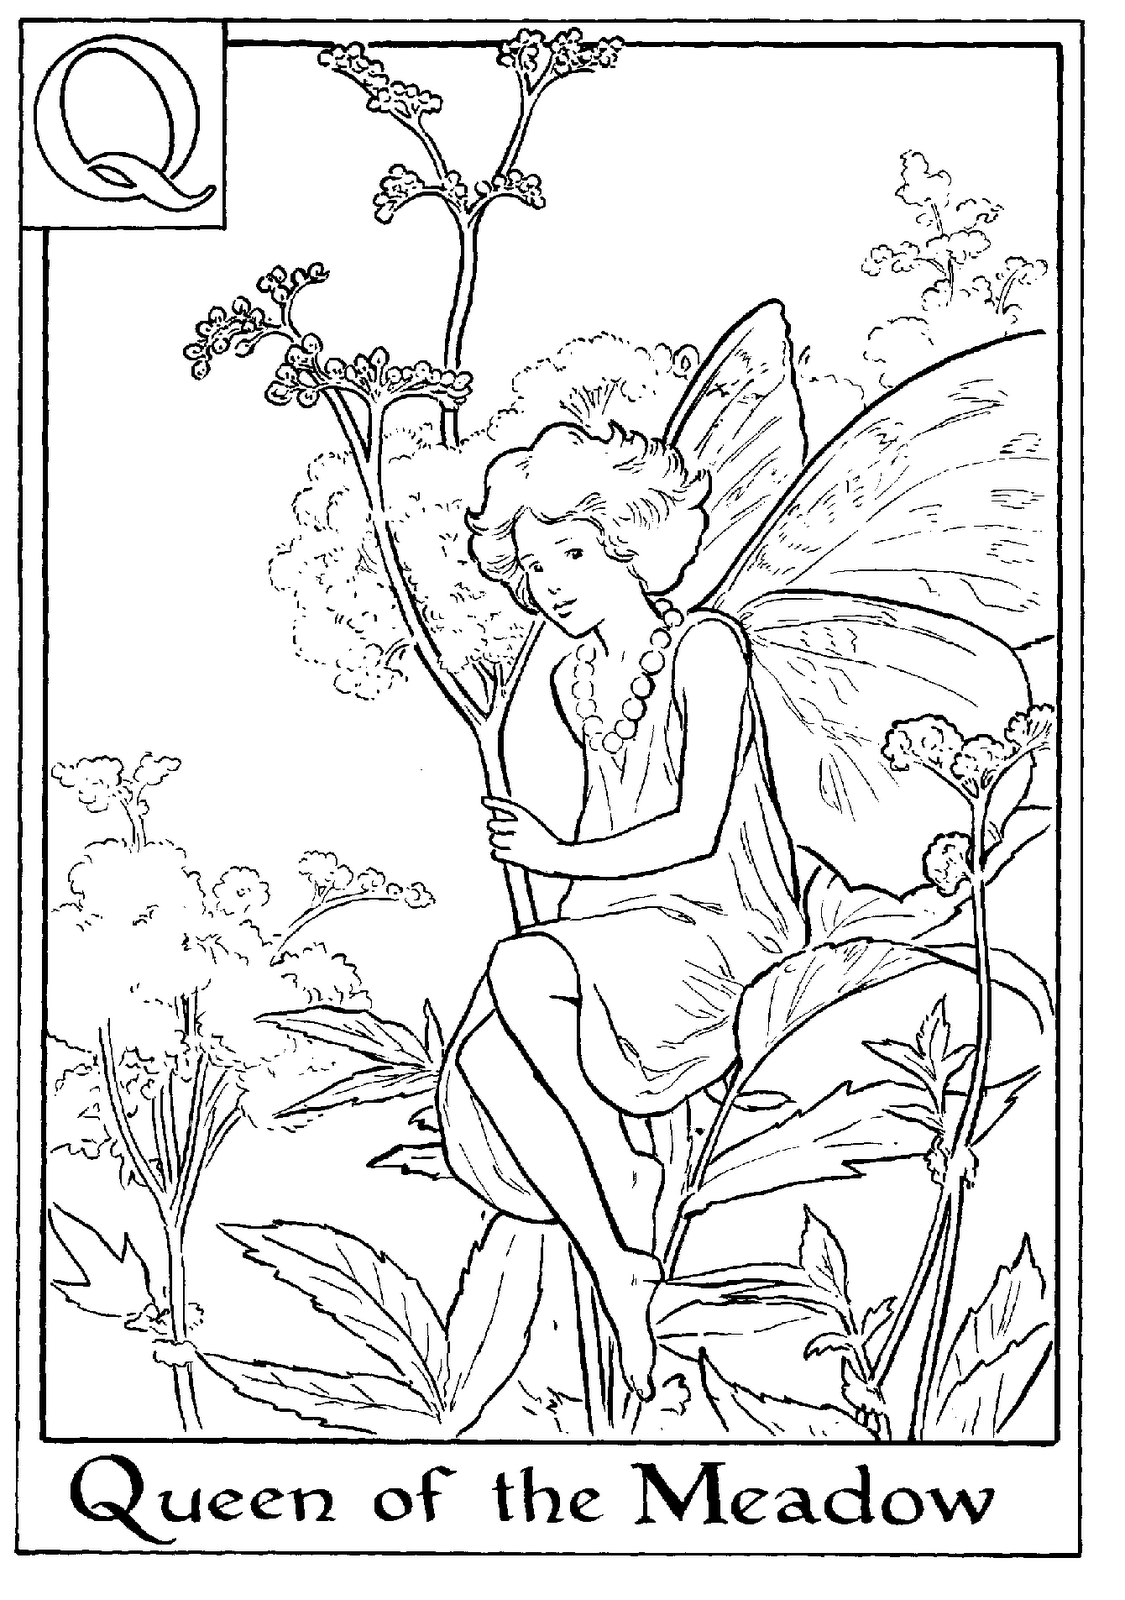 fairy queen coloring pages fairy queen coloring pages shopping guide we are number pages queen coloring fairy